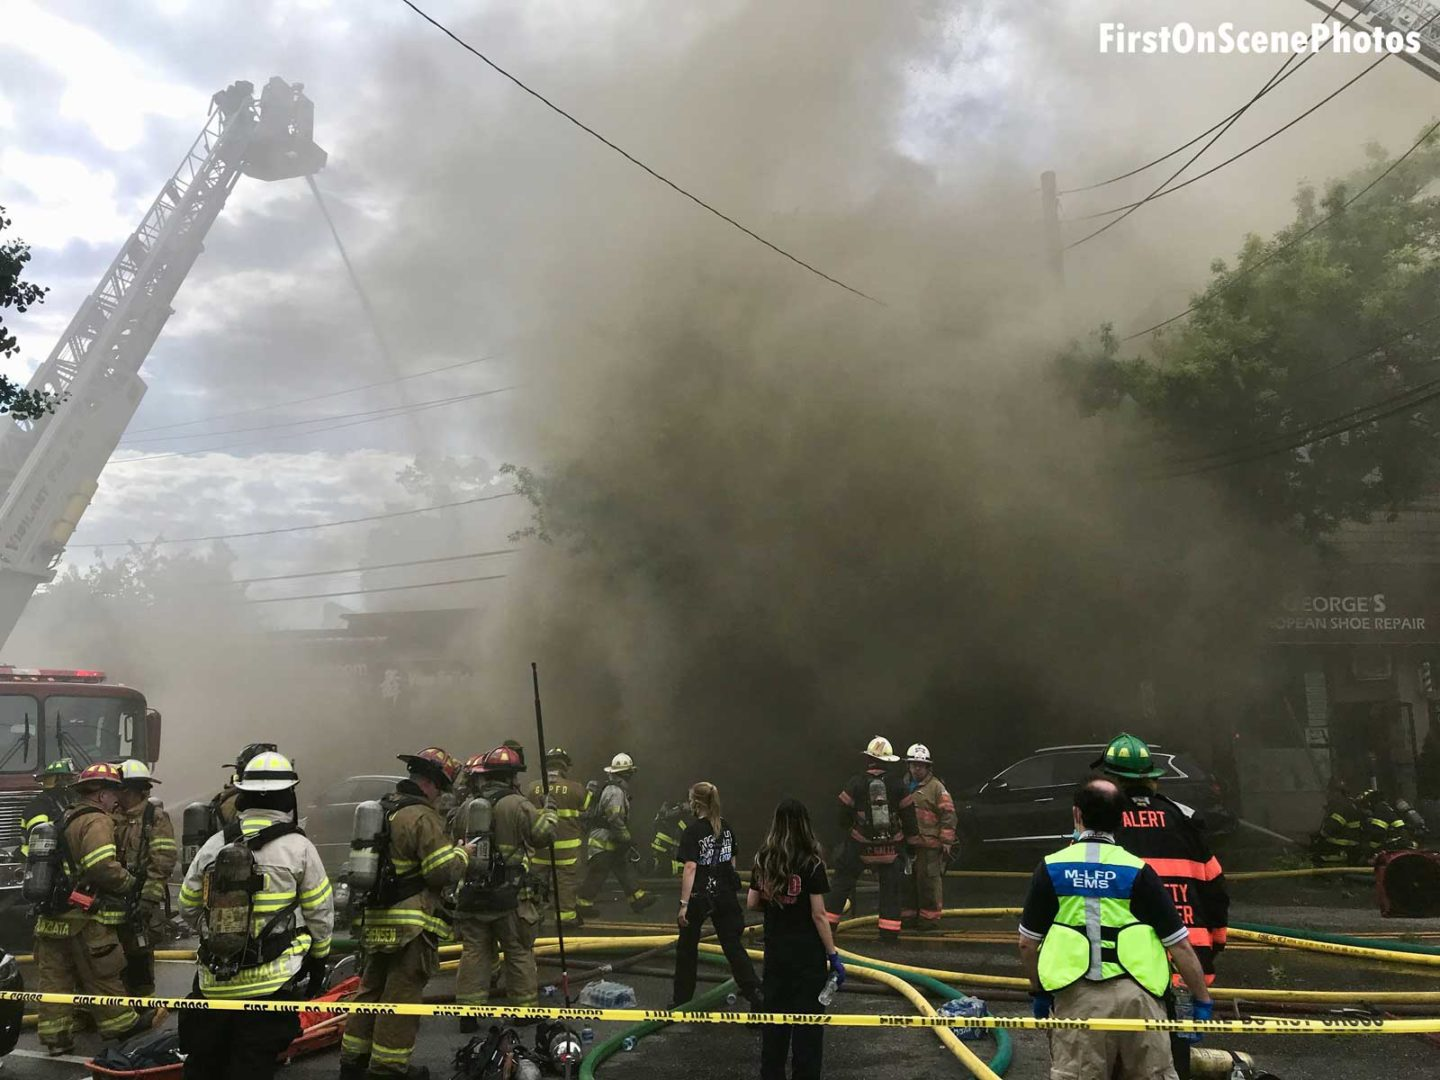 Firefighters enveloped at the scene of the fire